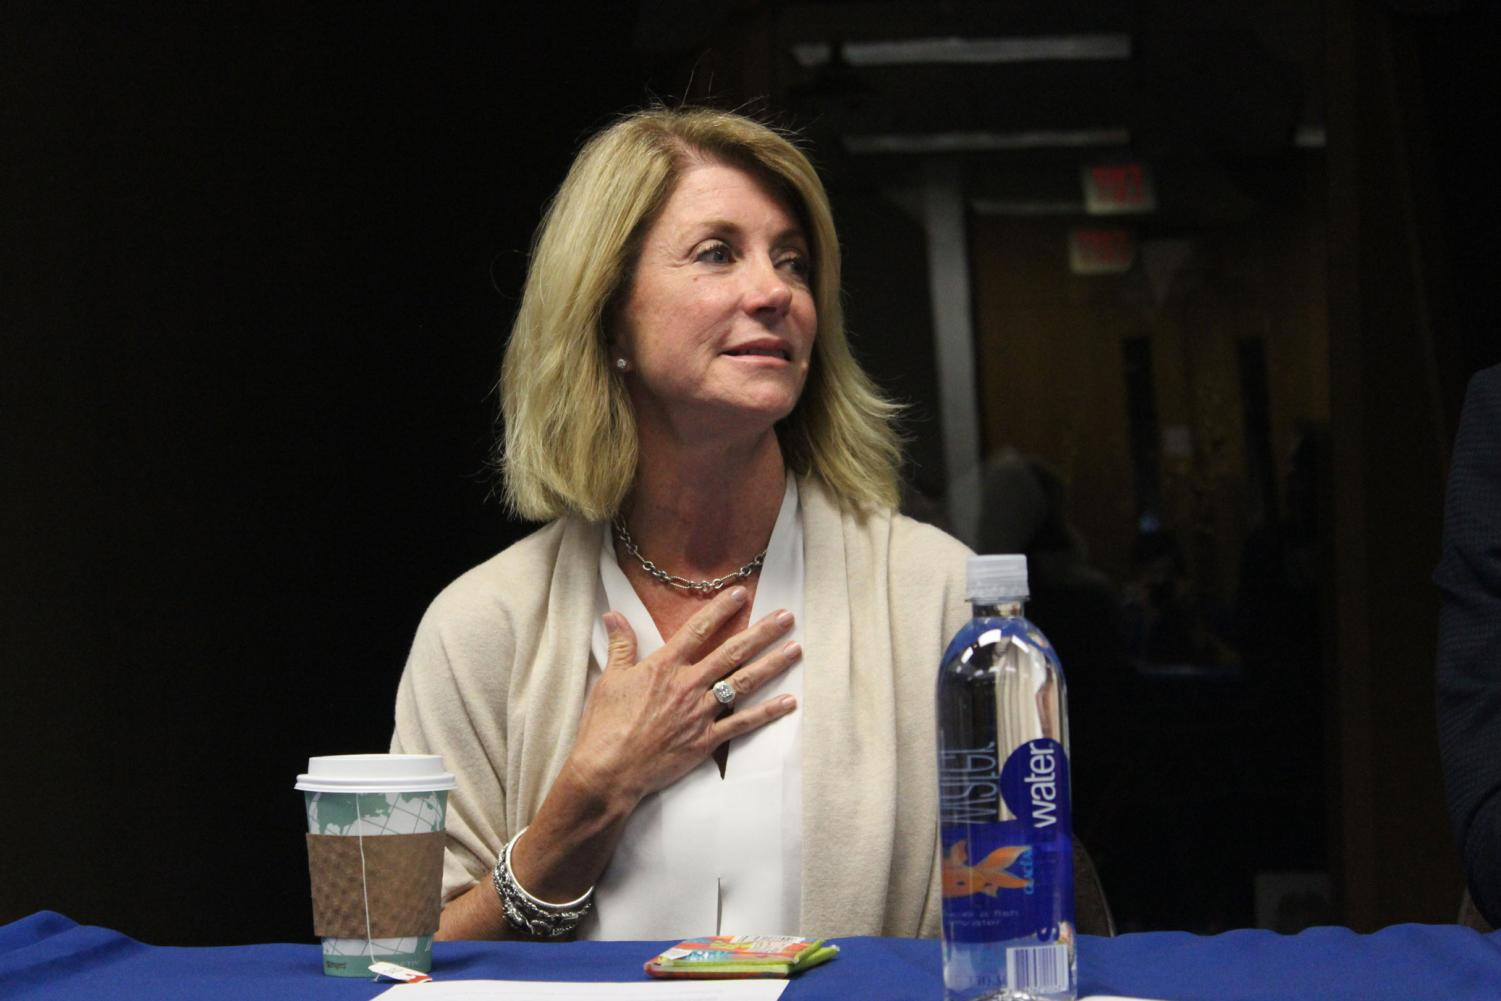 Wendy Davis was the keynote speaker at the Lies into Laws campus forum on Tuesday, November 14.